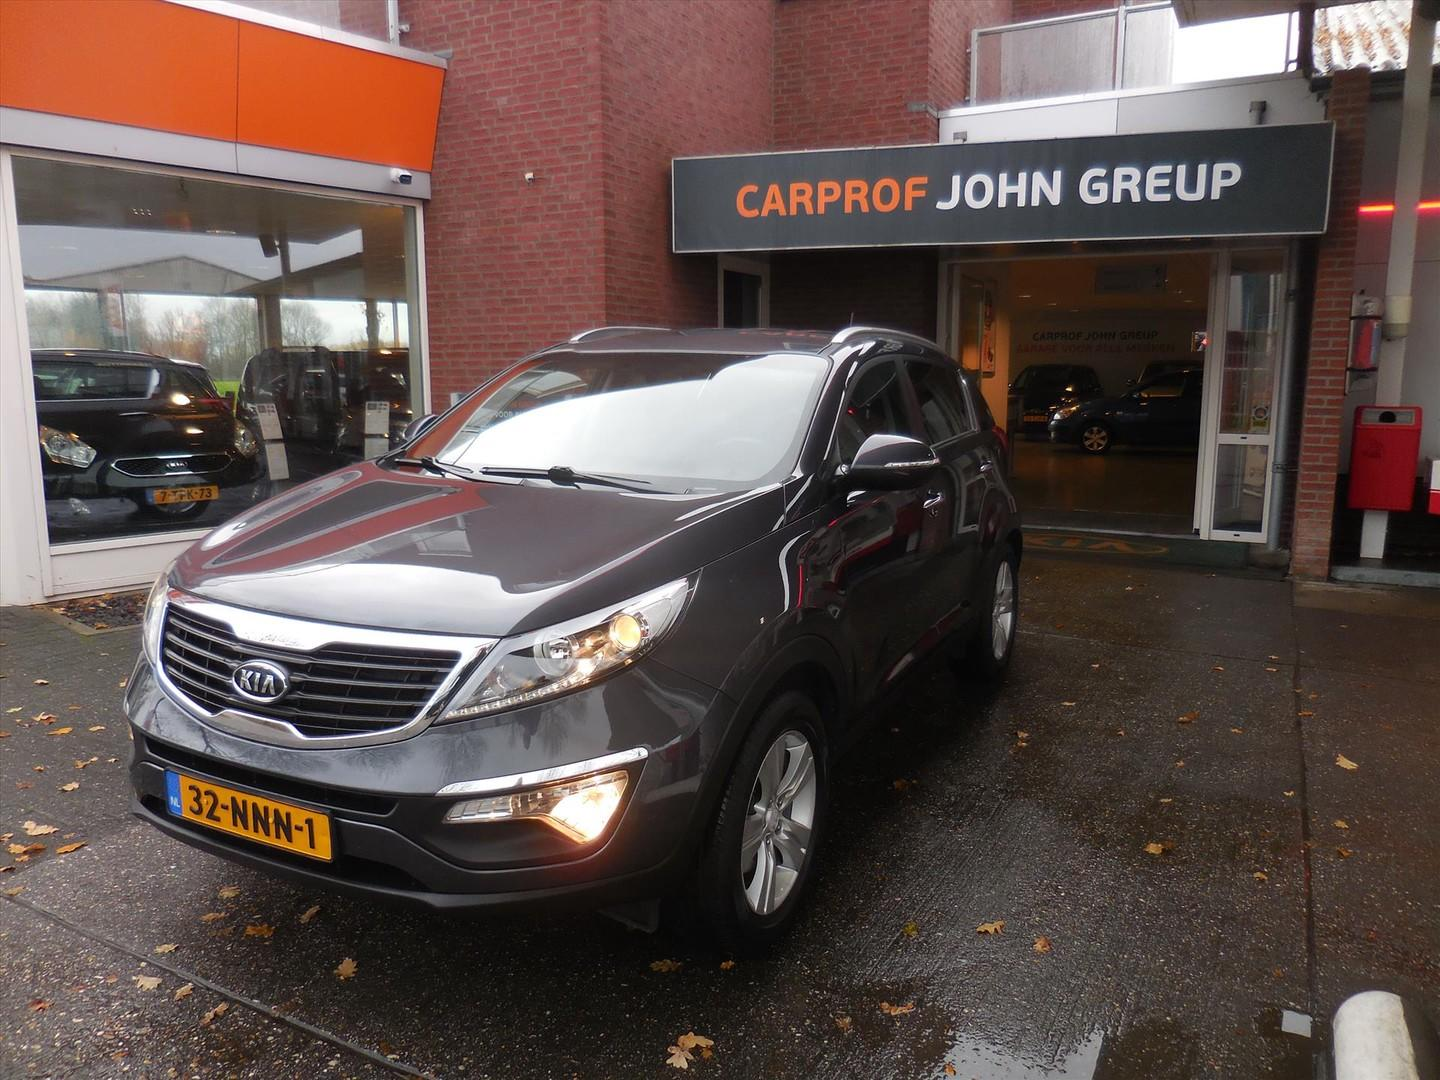 Kia Sportage 2.0 cvvt x-ecutive plus pack / trekhaak 1900 kg